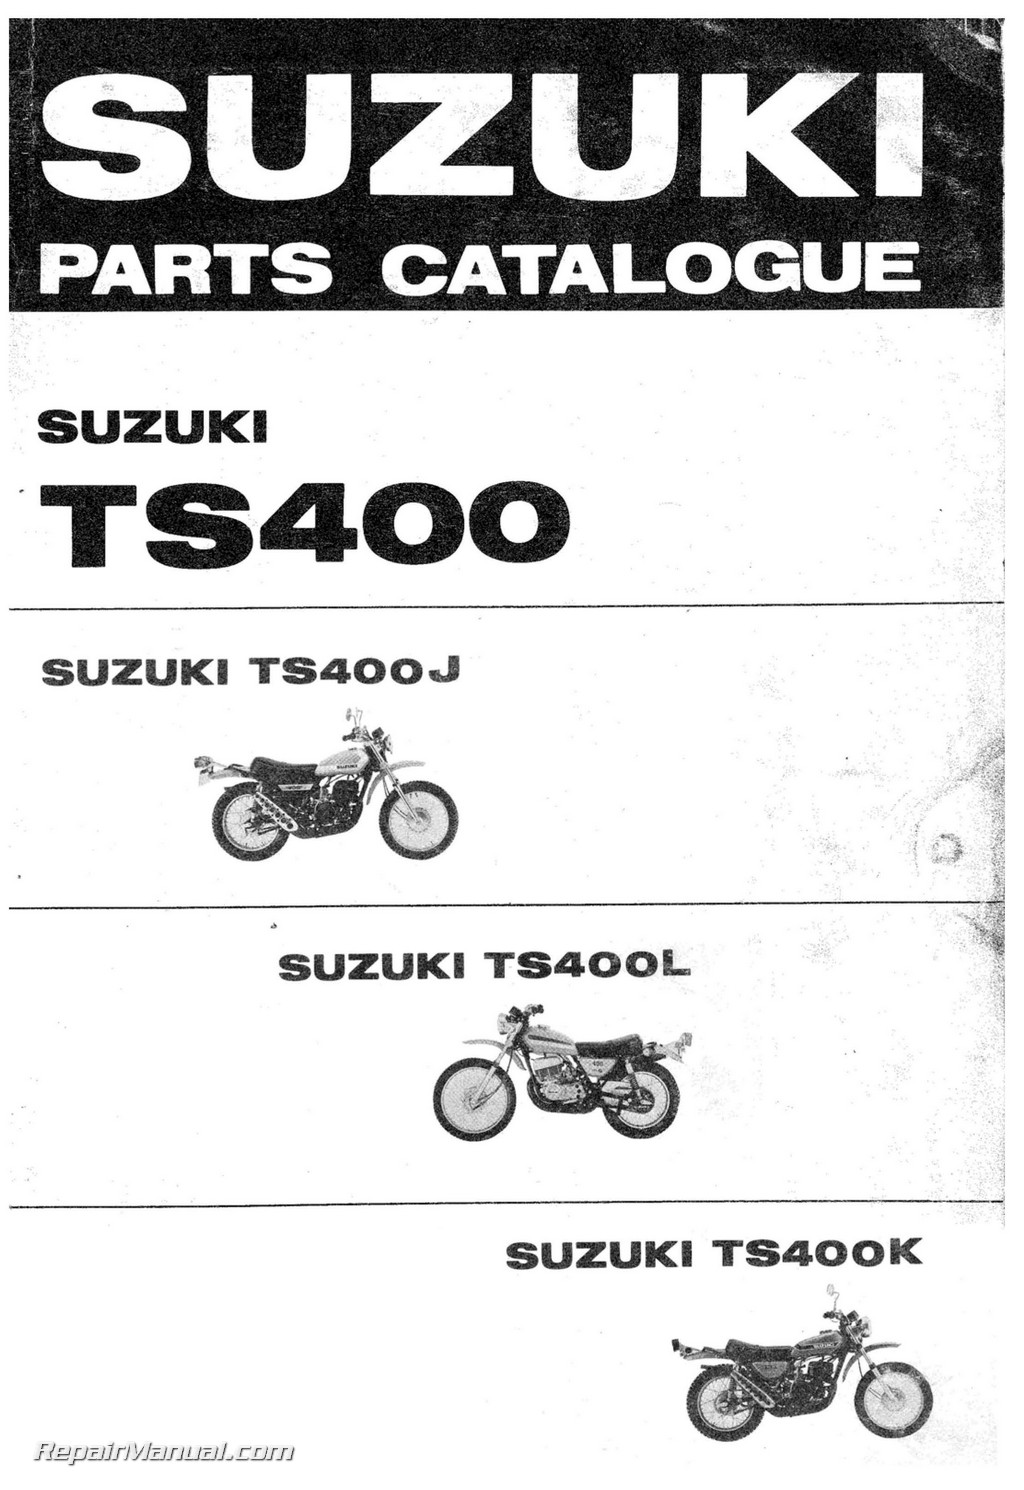 1972 1973 1974 suzuki ts400j l k motorcycle parts manual rh repairmanual com Suzuki Motorcycles Parts Batteries Suzuki Motorcycle Parts Online Catalog